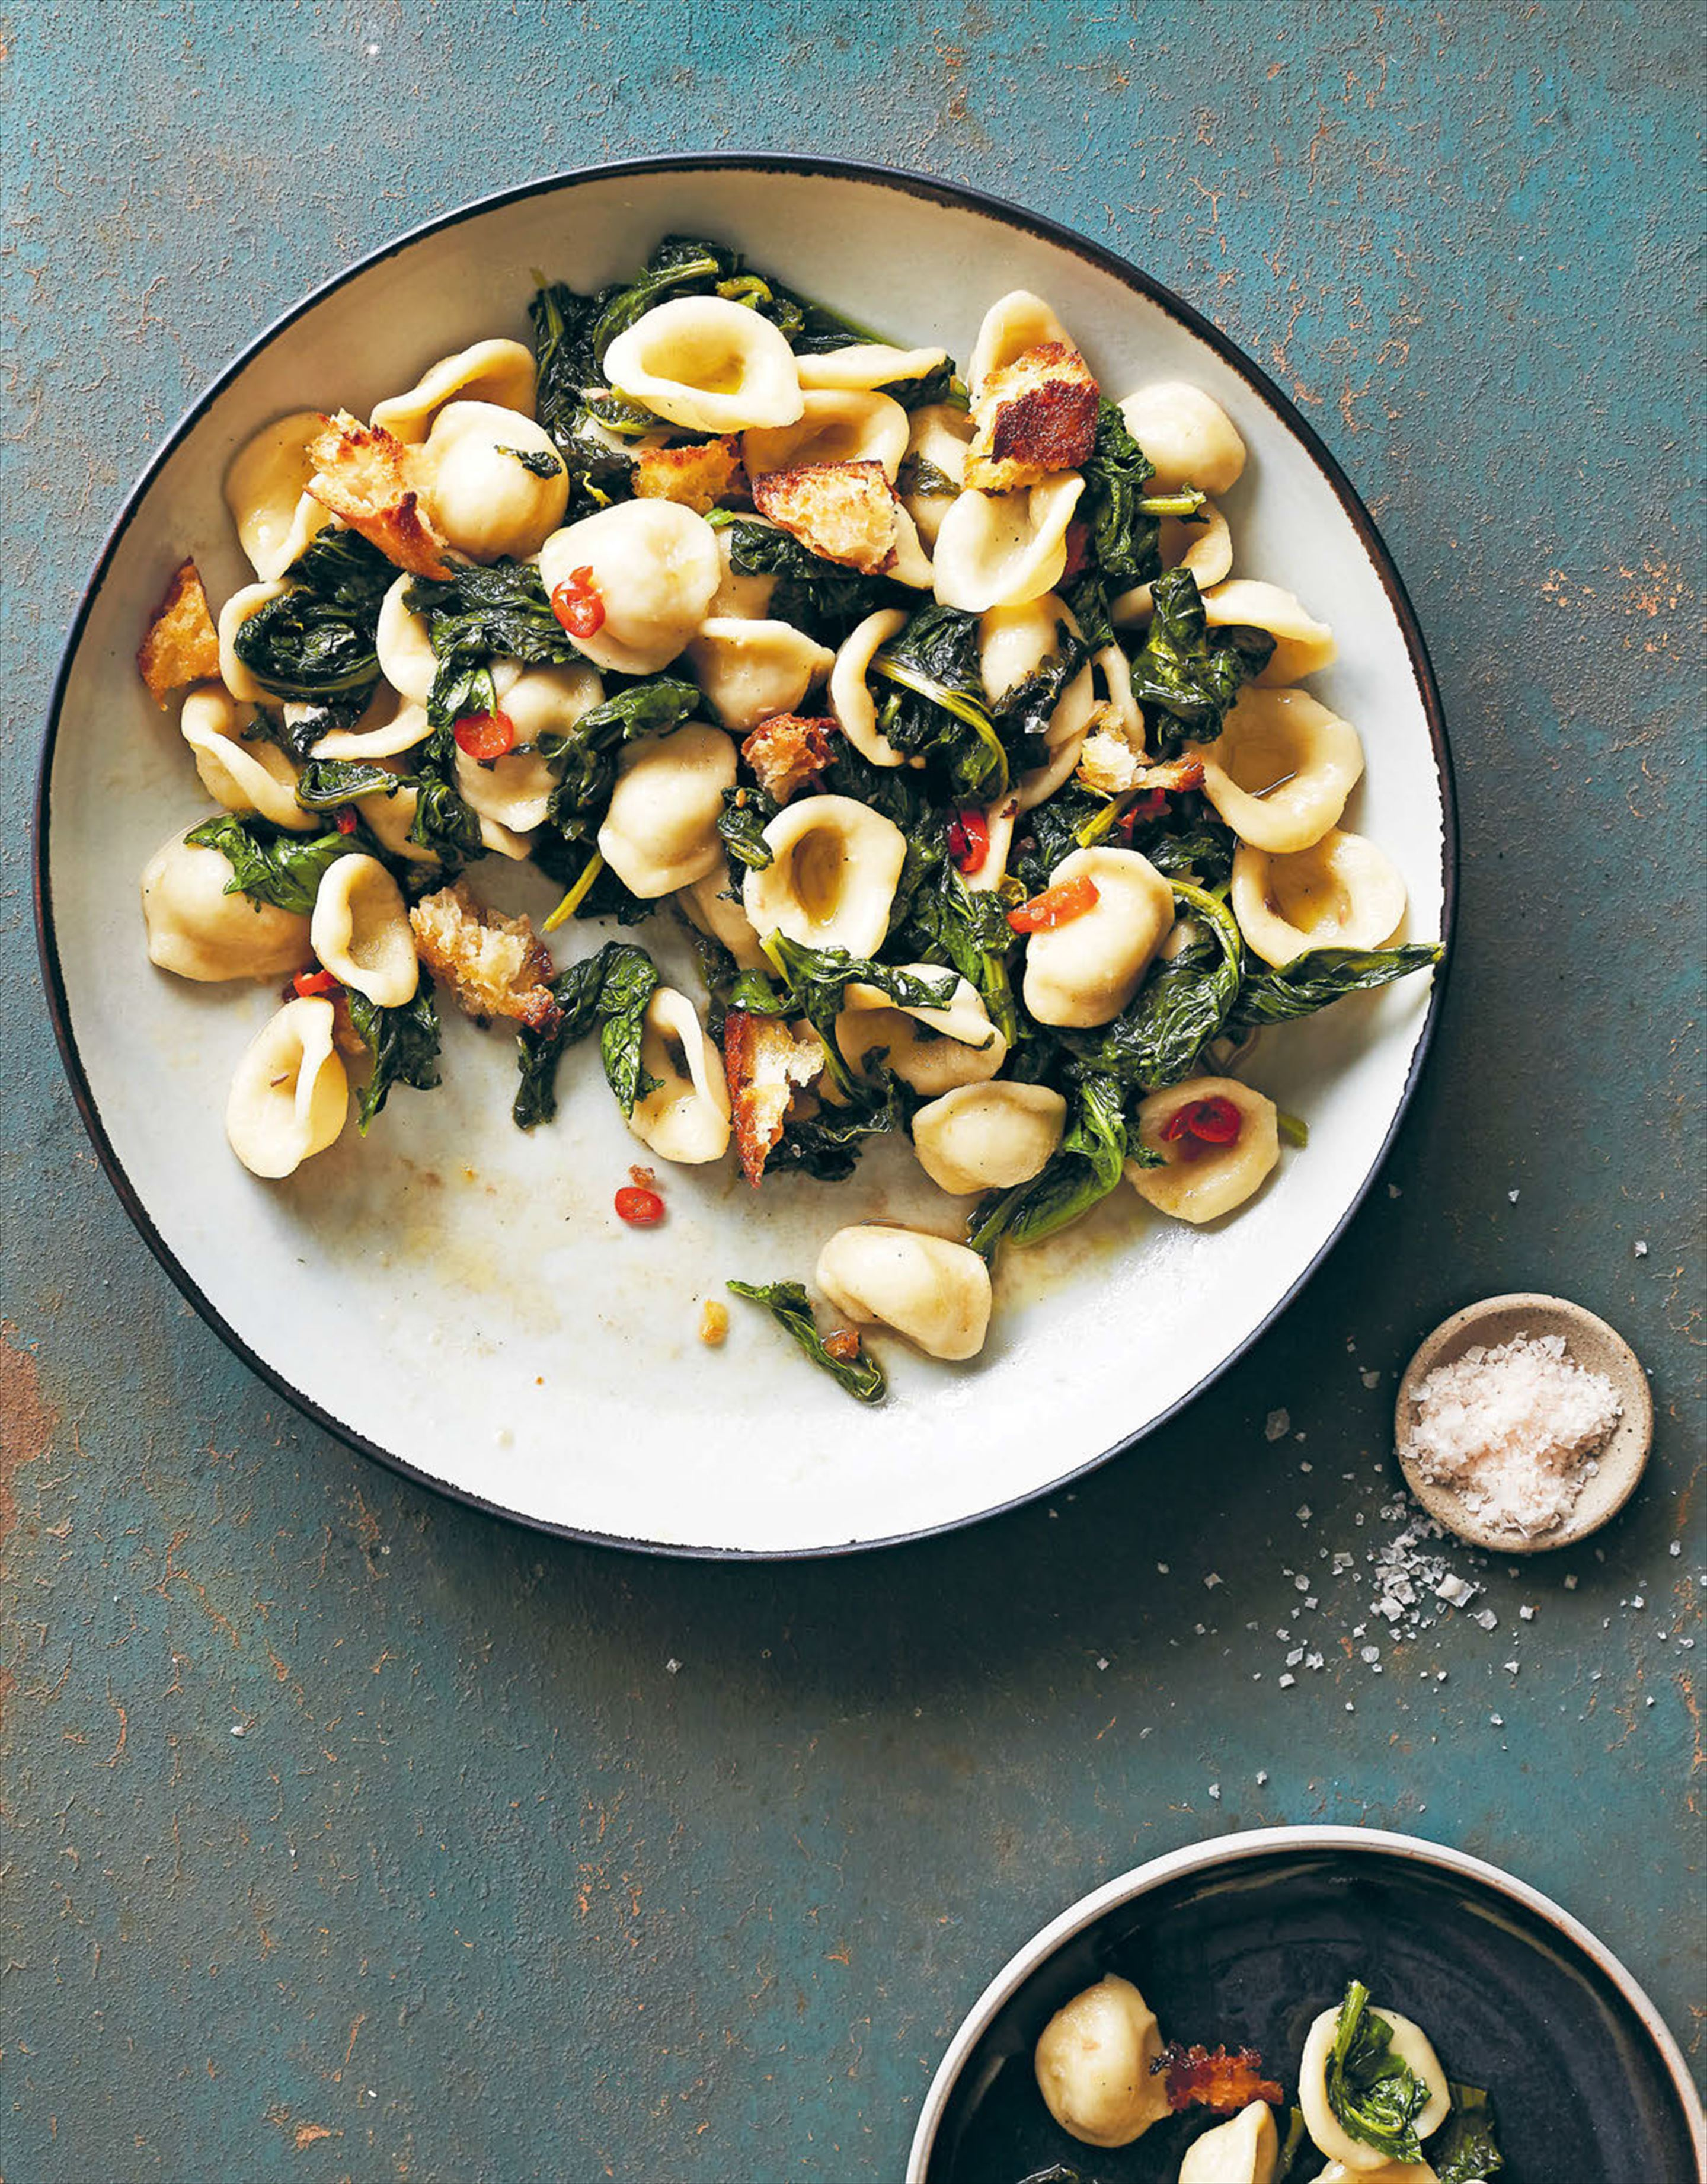 Orecchiette with broccoli rabe